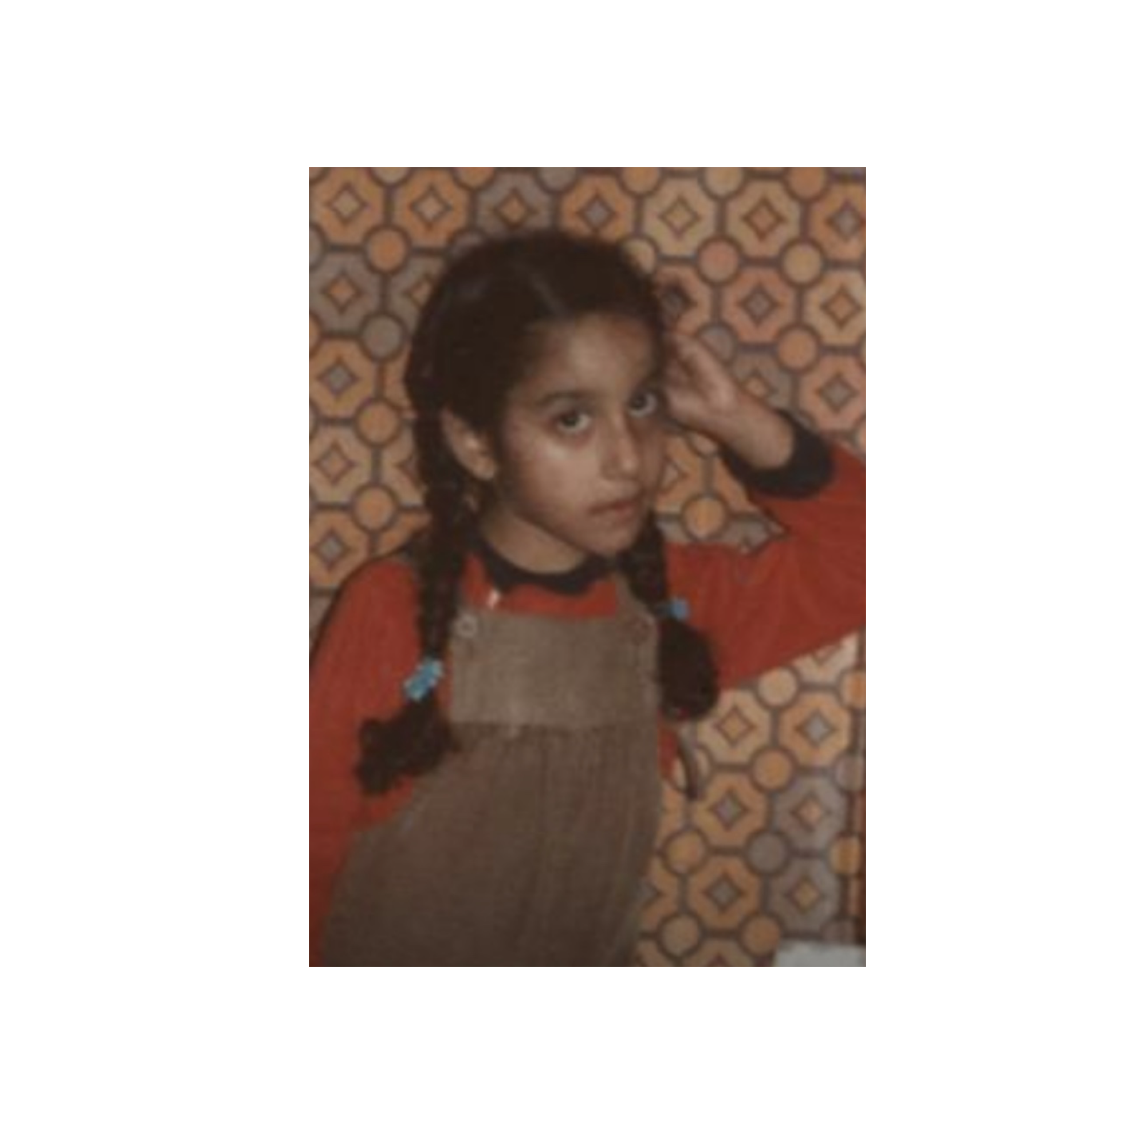 Me aged 6, angry about something.